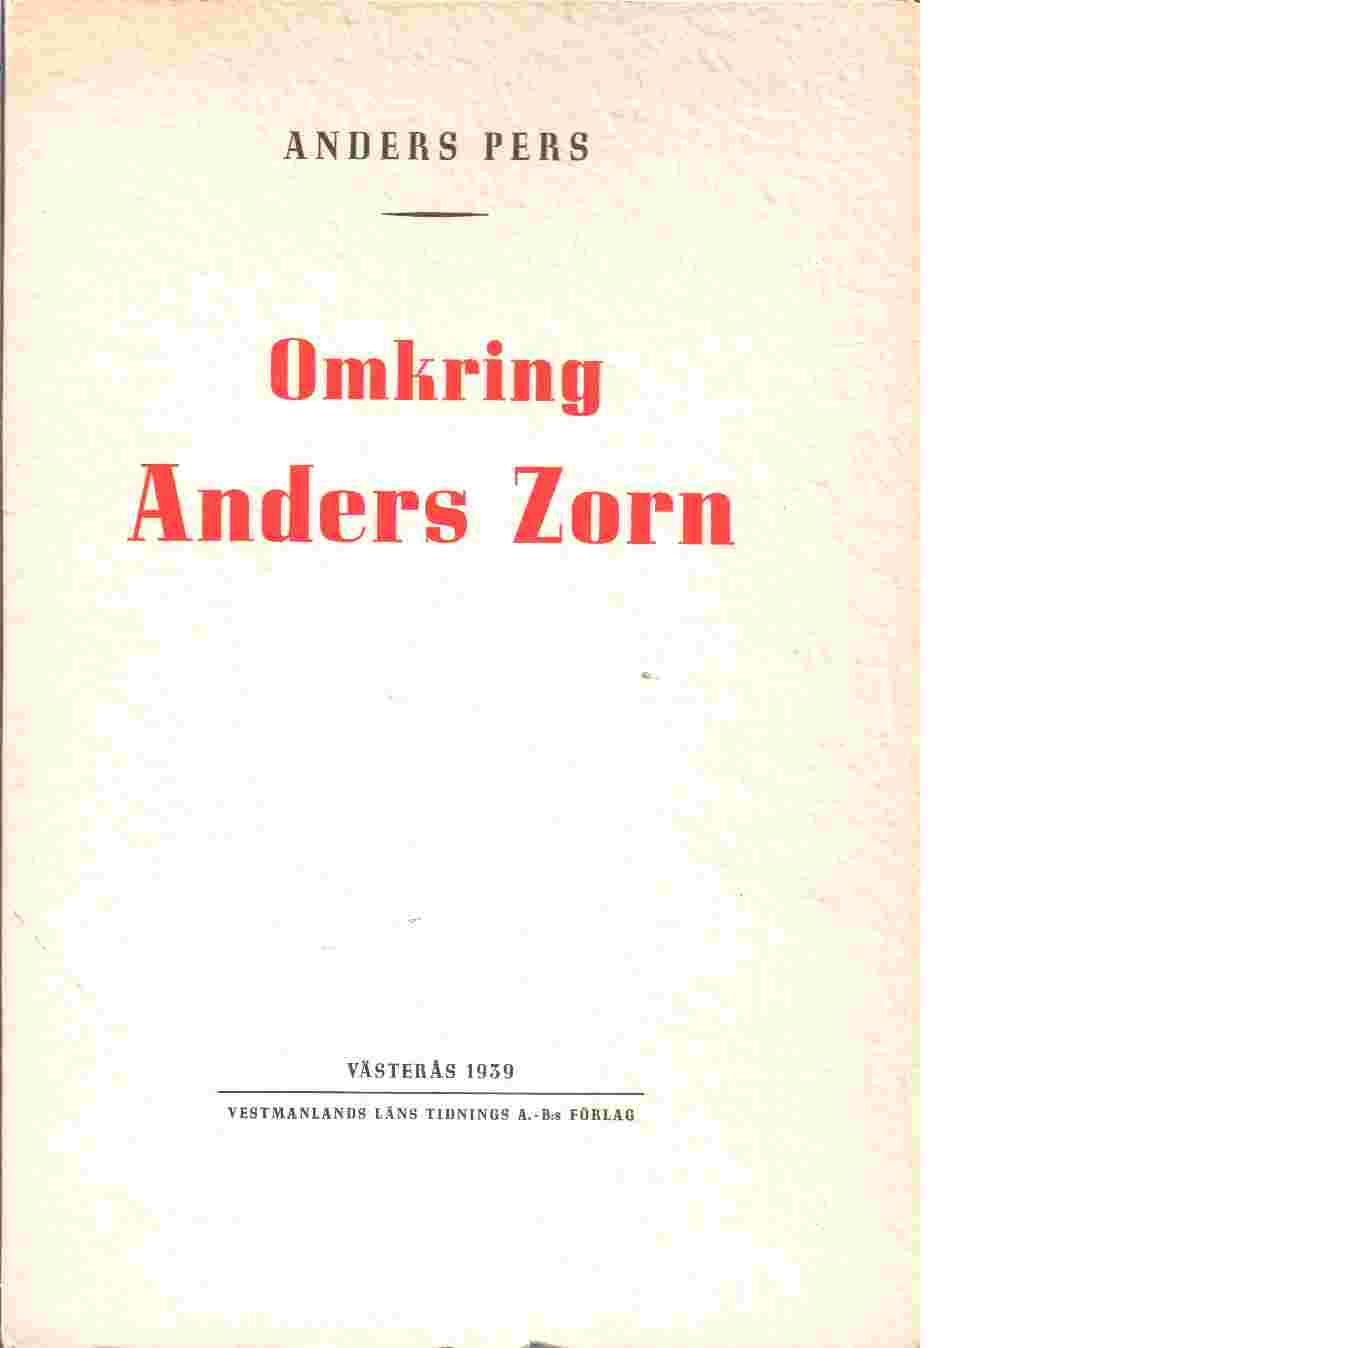 Omkring Anders Zorn - Pers, Anders